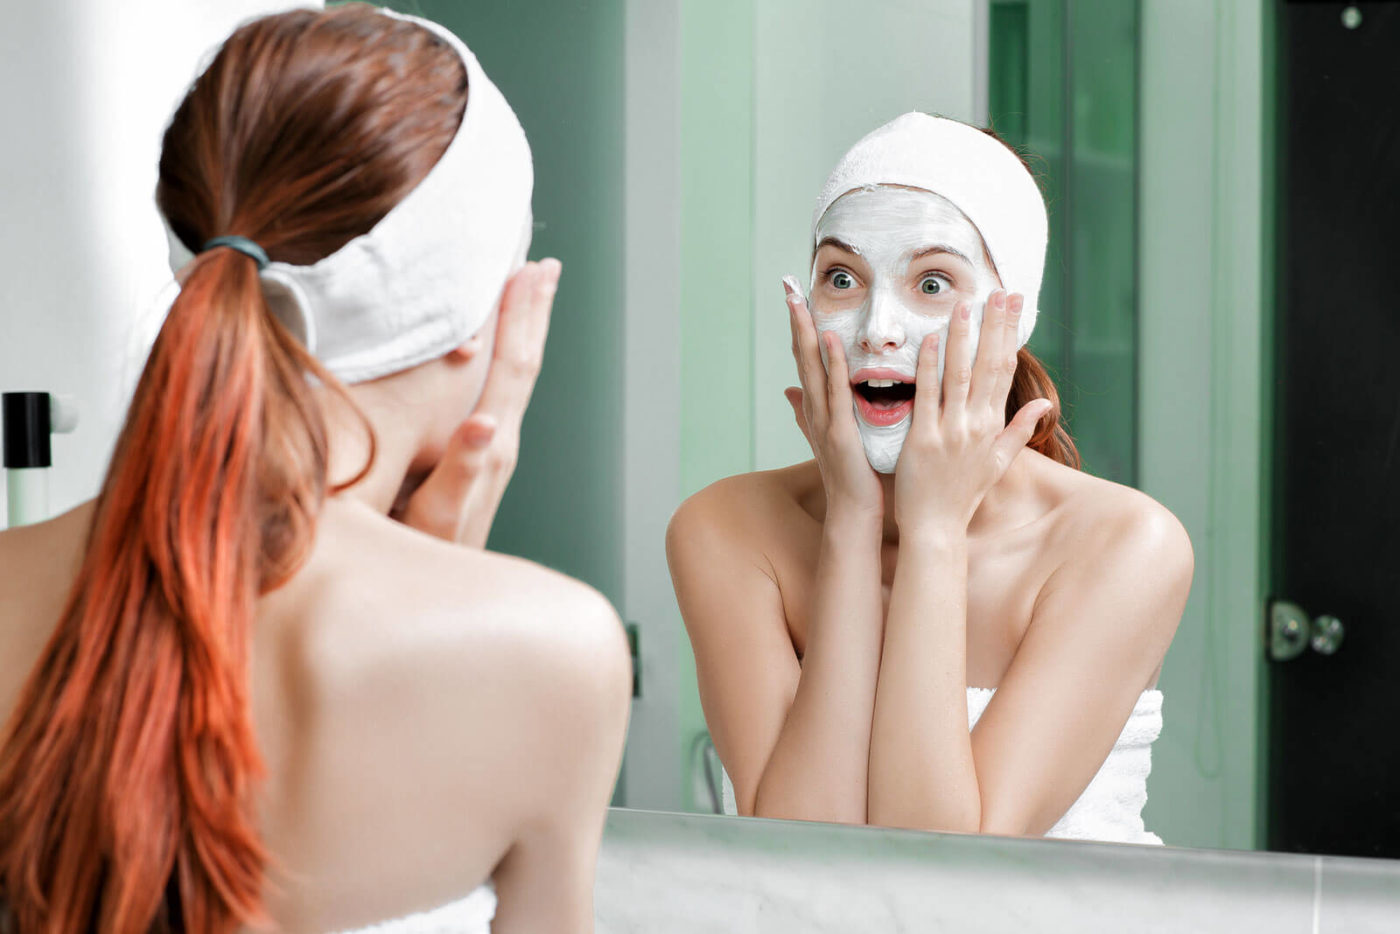 Woman with red hair has covered her face with skin care.